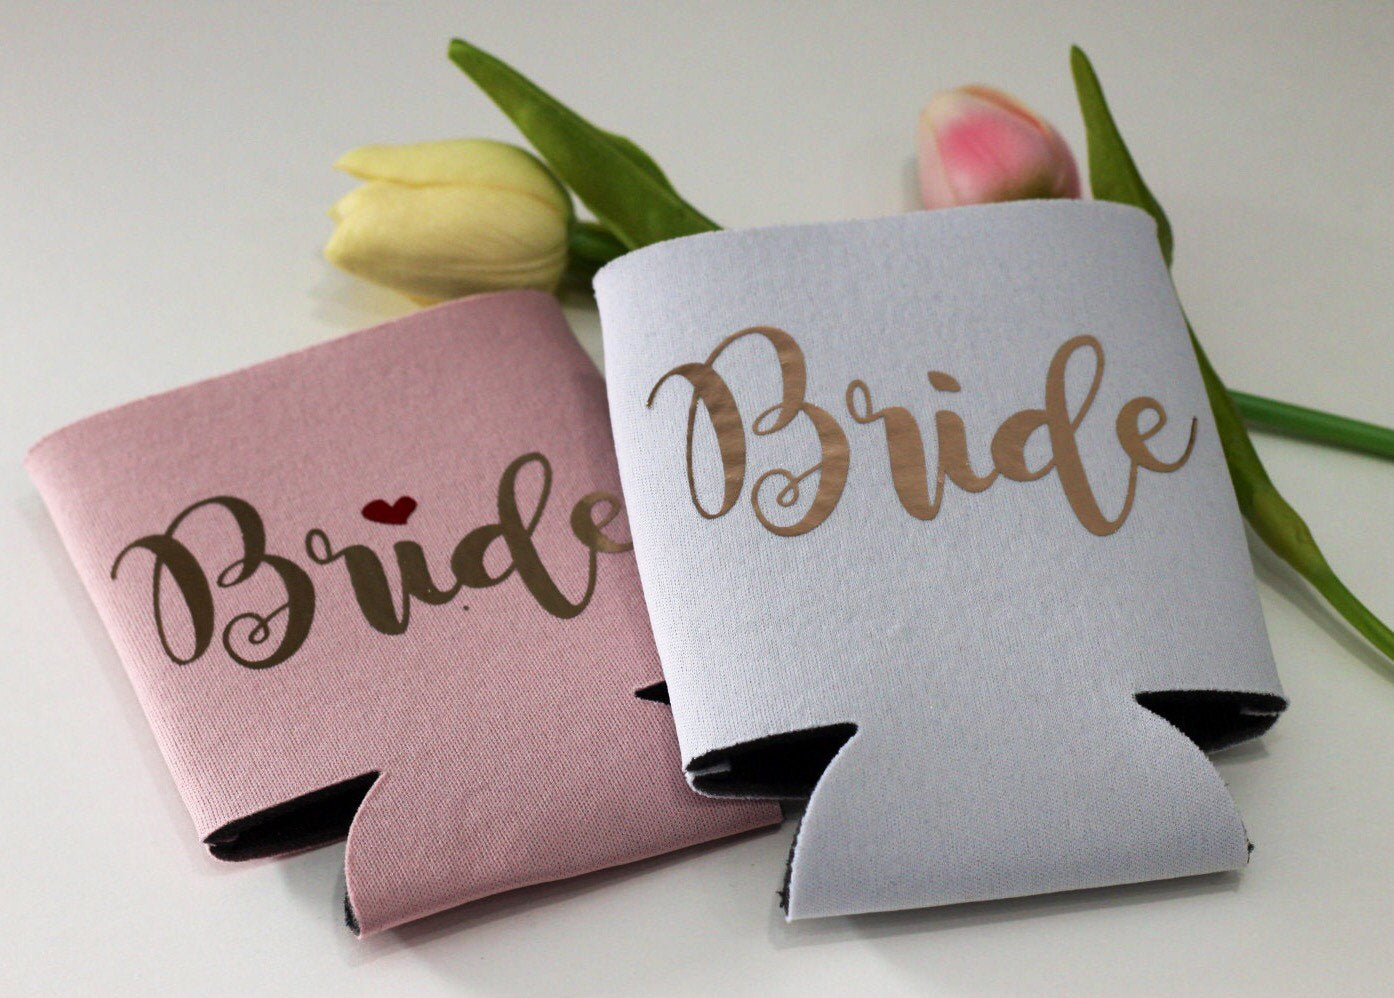 Bride Can Cooler Bachelorette Party Favors Wedding Party Gifts